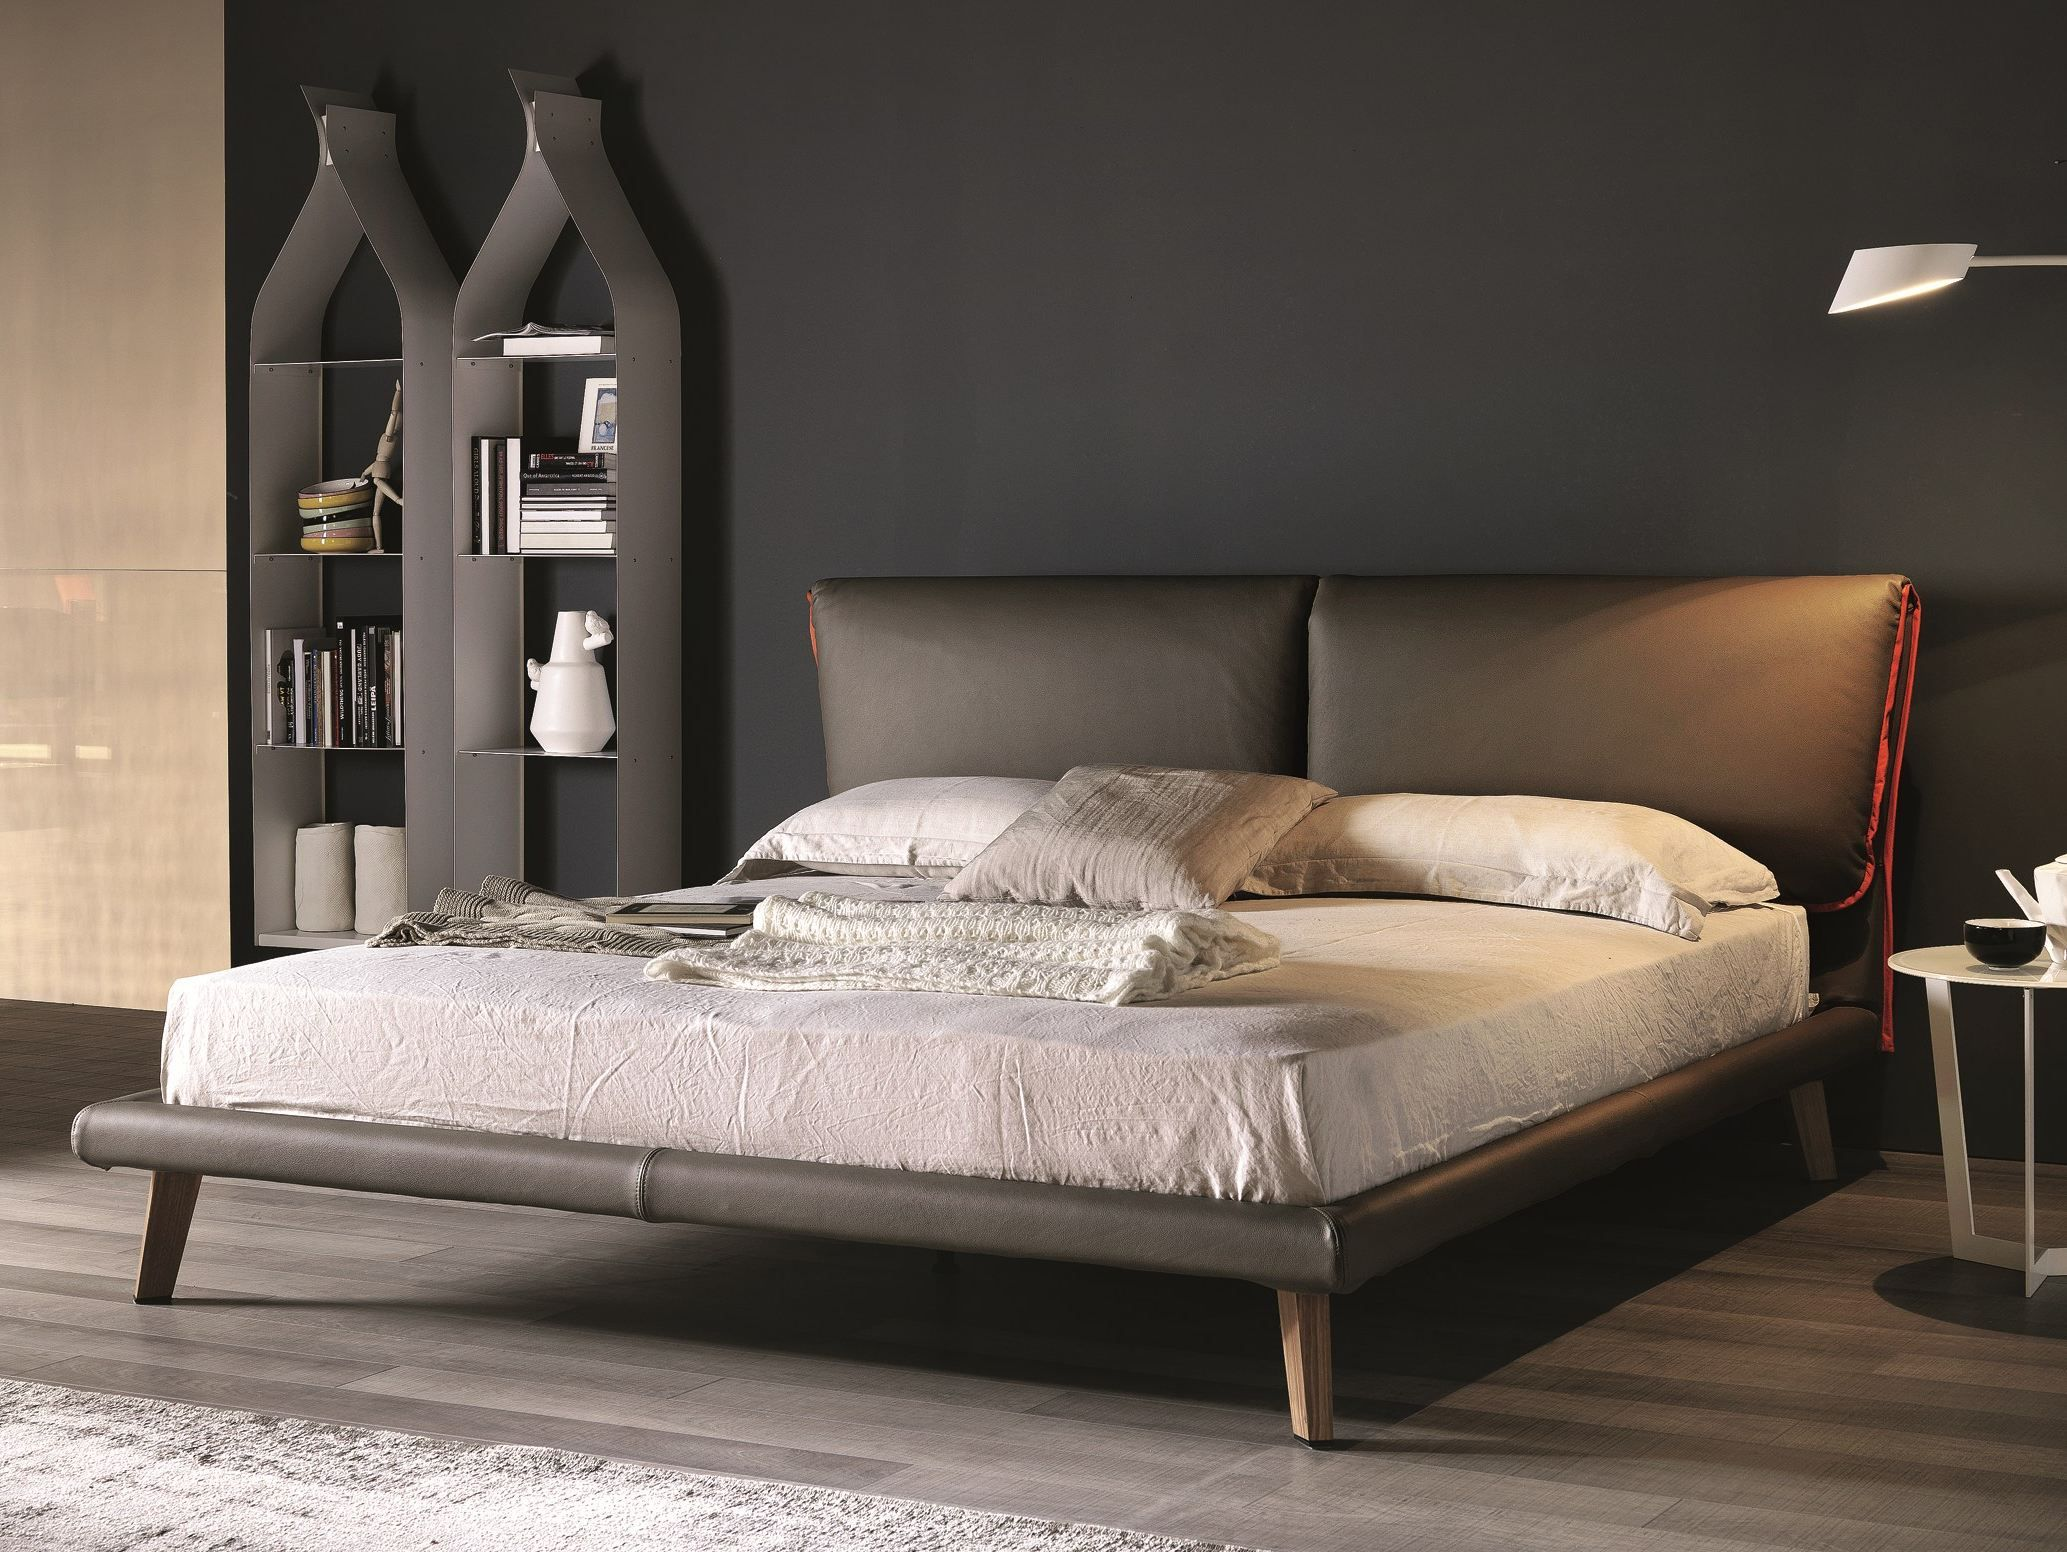 Design Of Bed For Bedroom Cool Imitation Leather Double Bed Adamcattelan Italia  Design Gino Inspiration